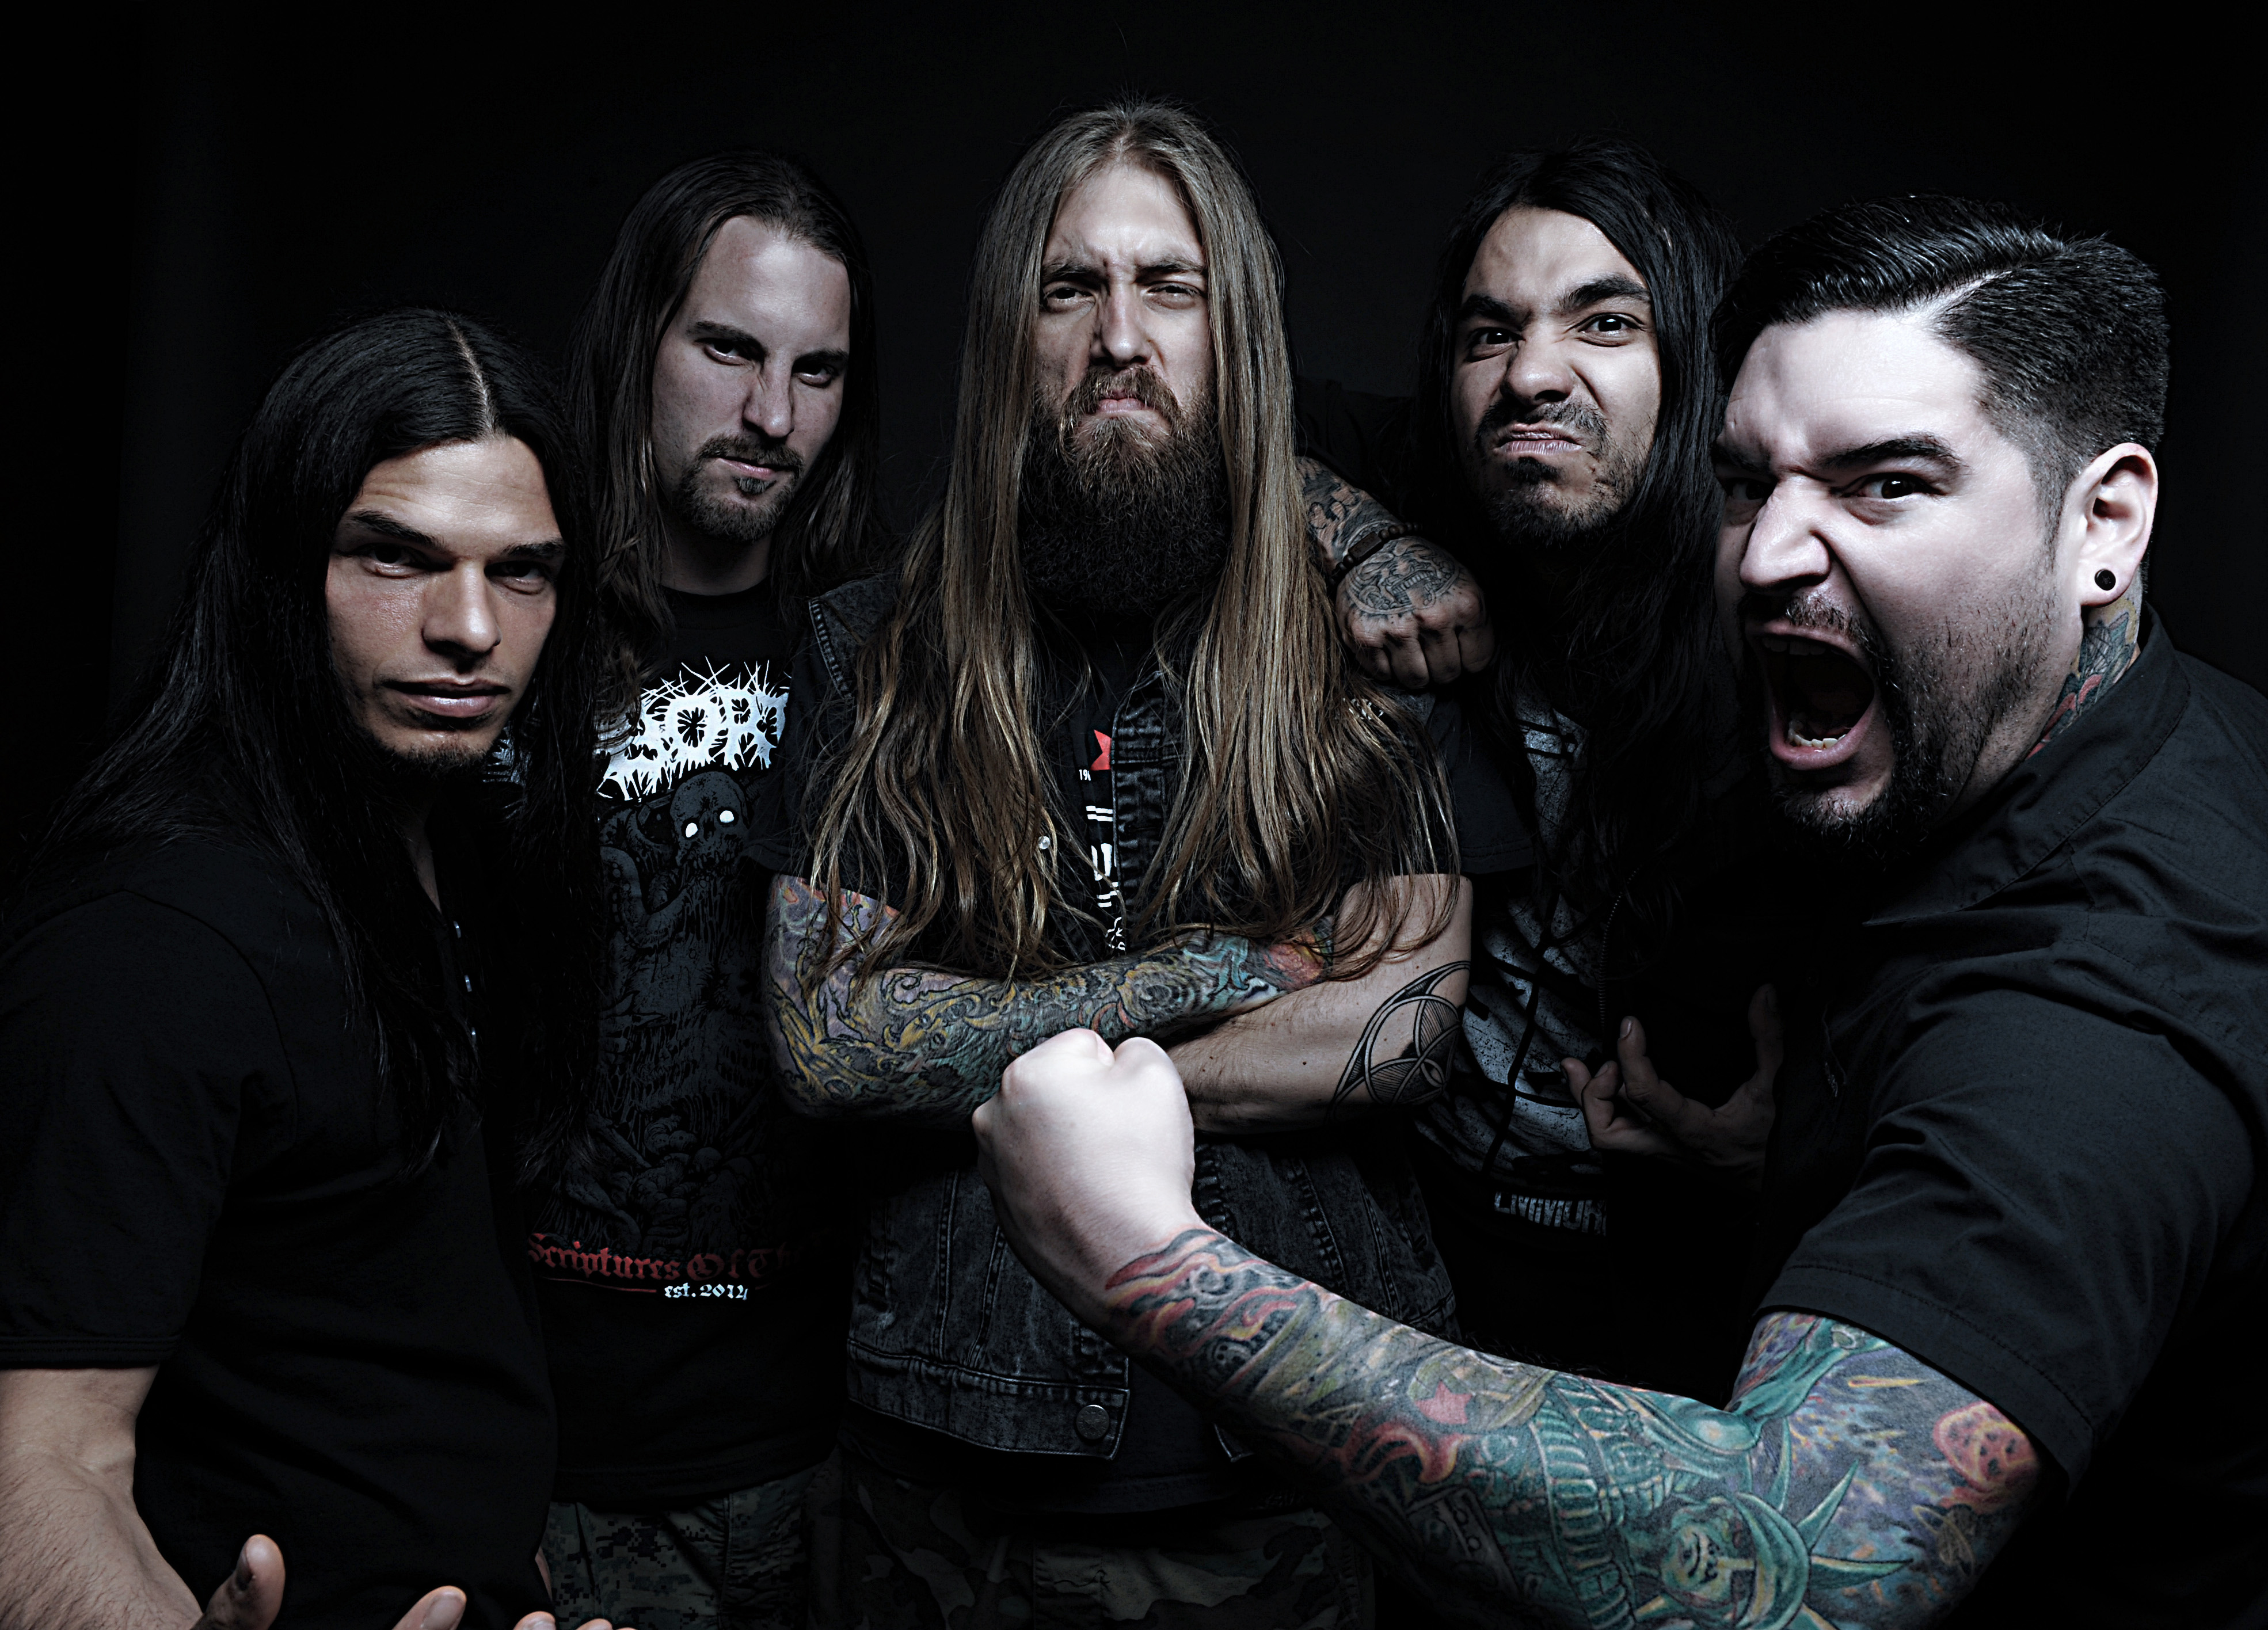 Nice wallpapers Suicide Silence 3940x2832px